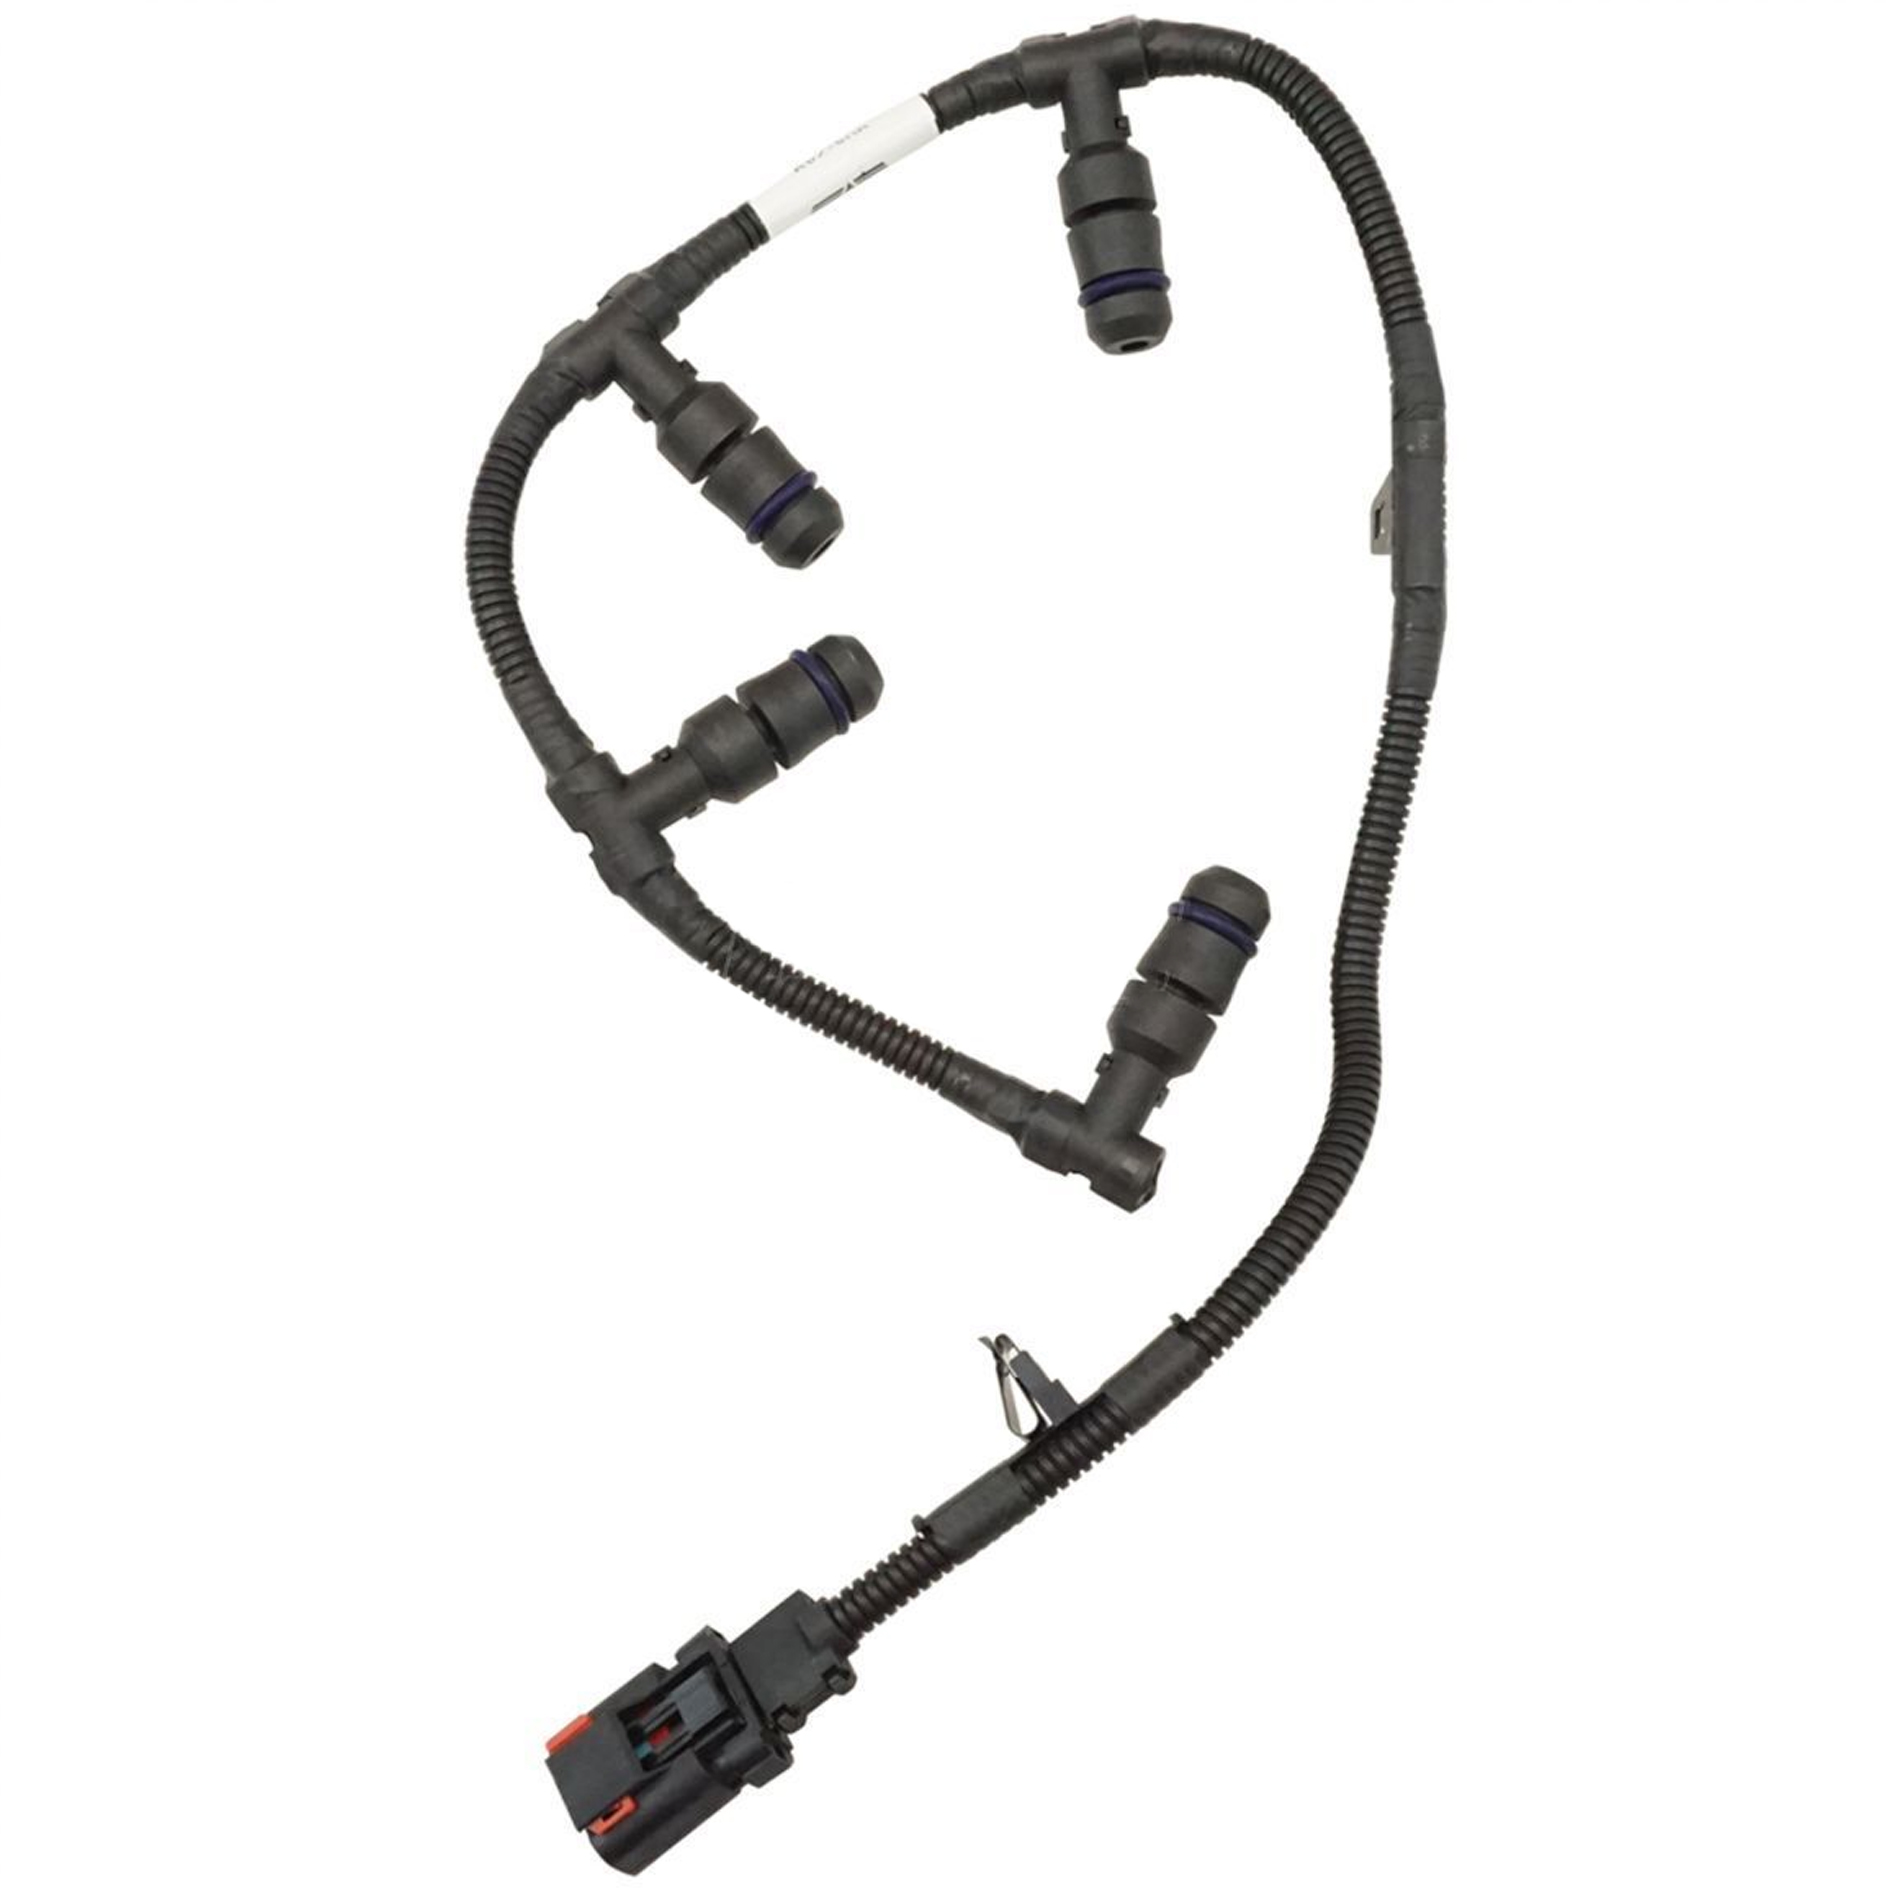 Rh Rightsel Glow Plug Harness For Ford E350 E450 F250